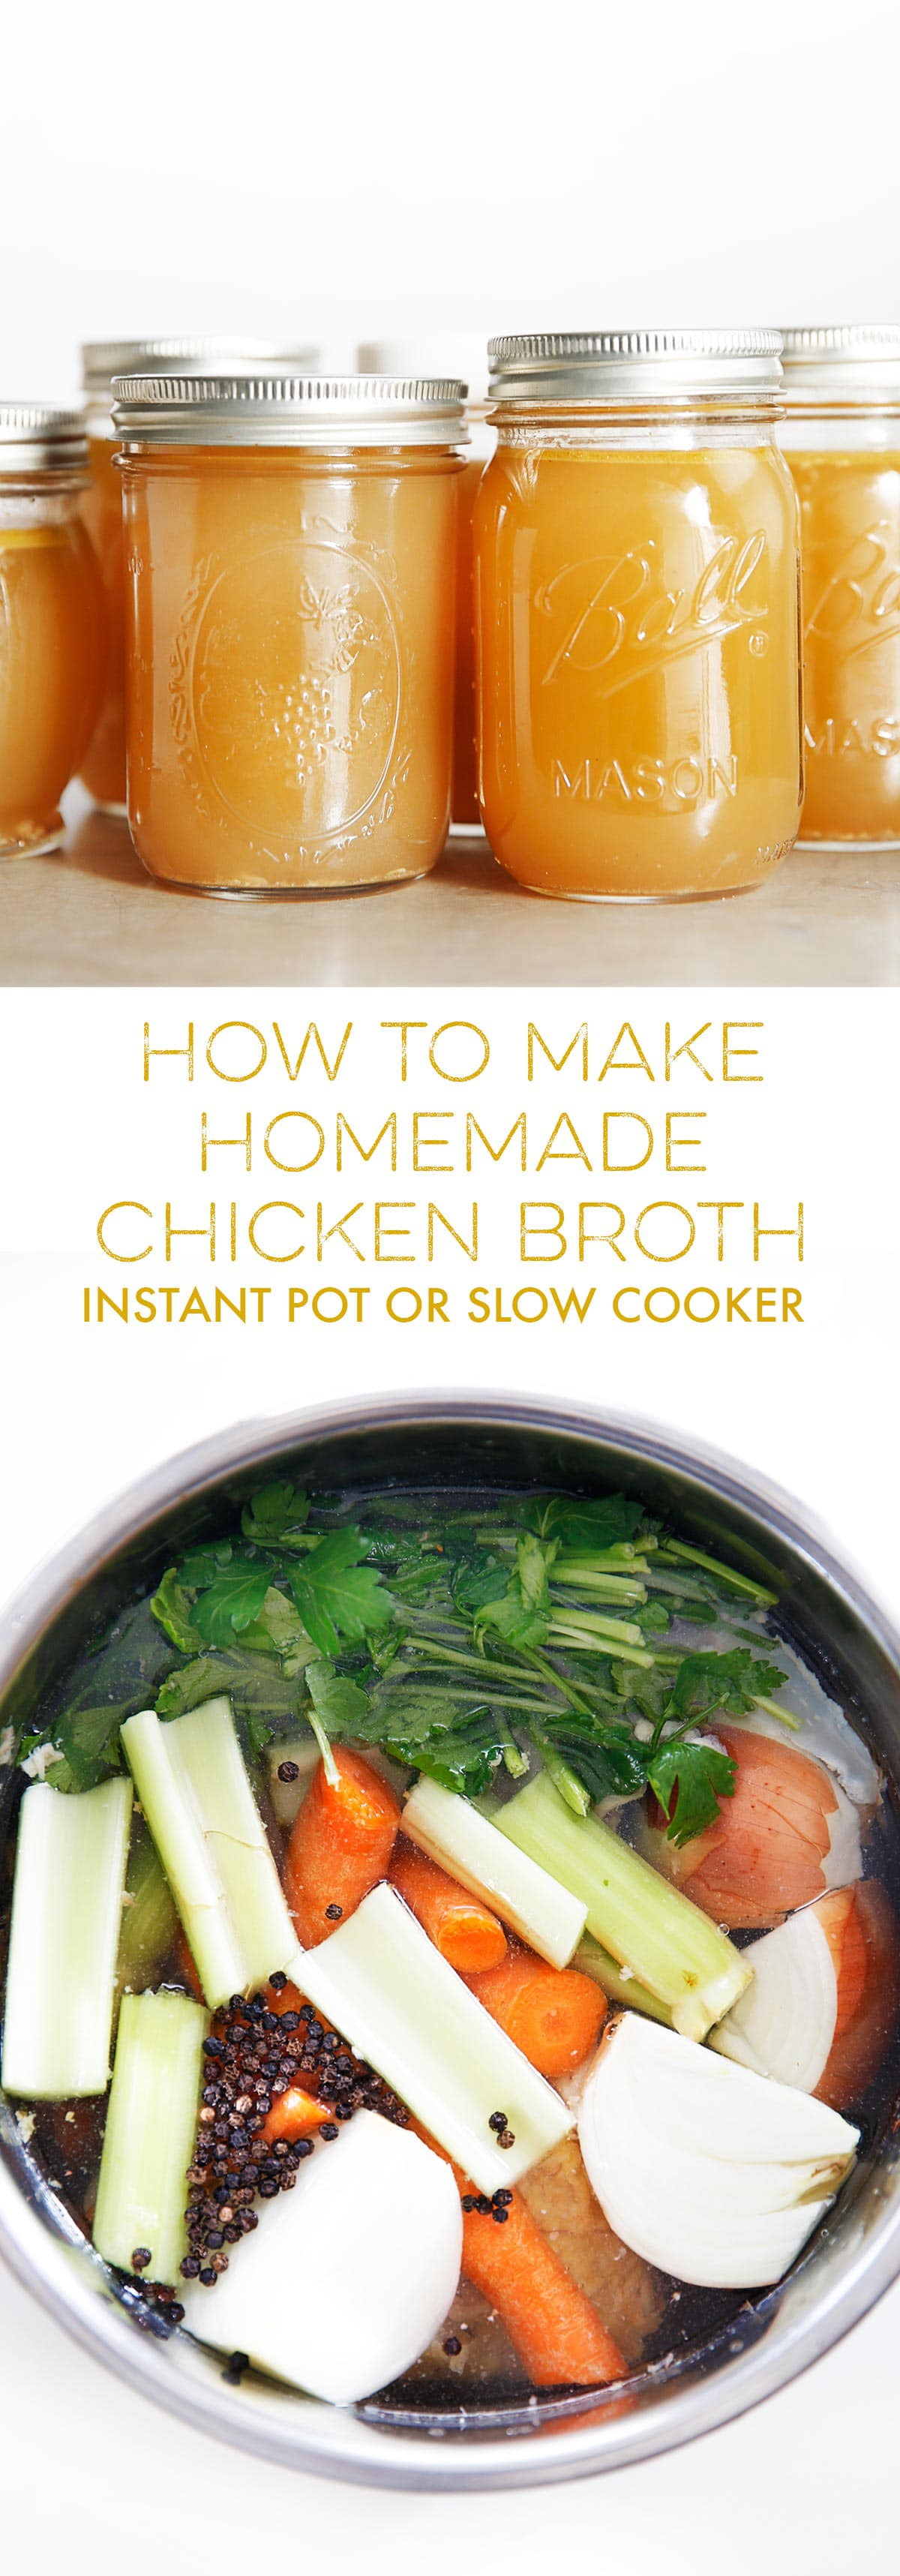 Lexi S Clean Kitchen How To Make Chicken Broth Instant Pot Or Slow Cooker